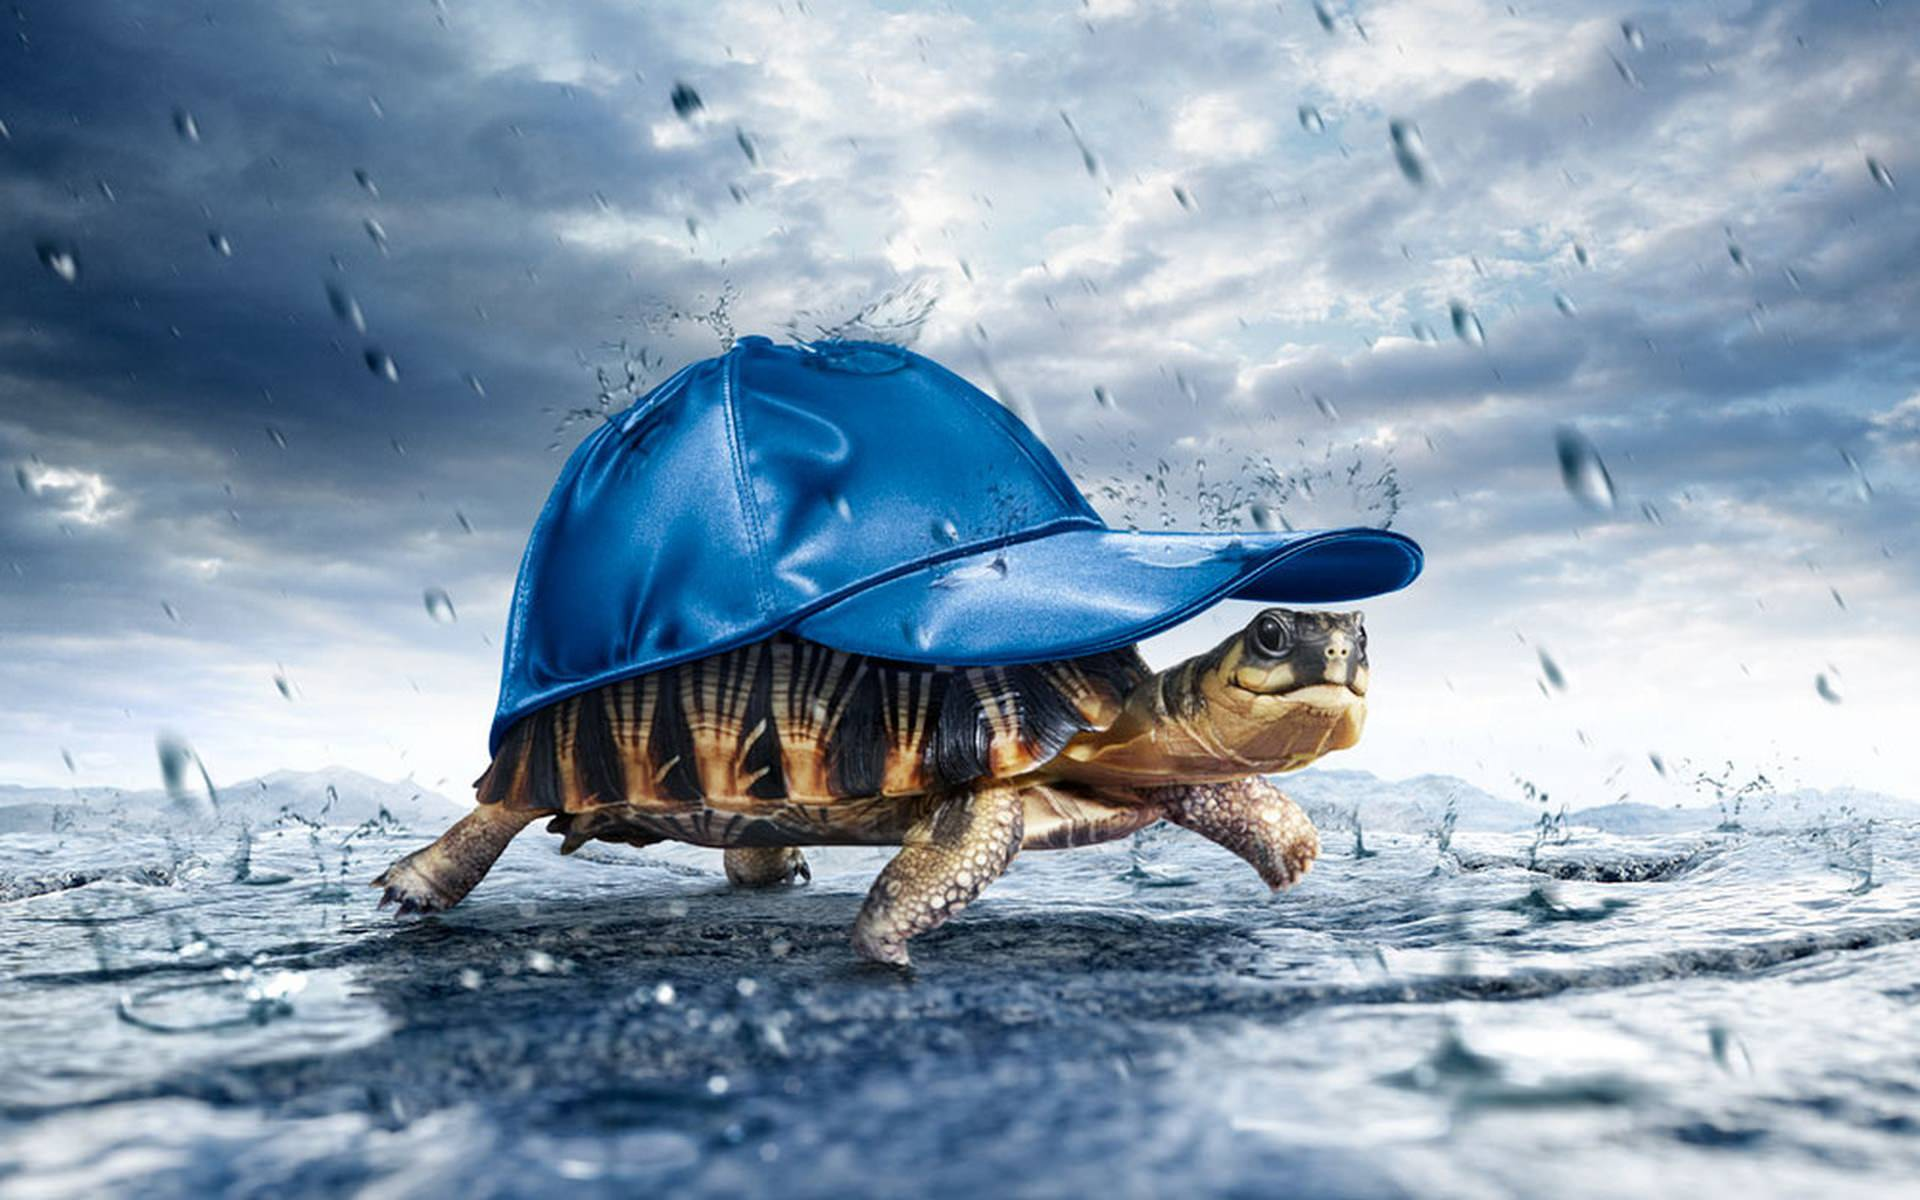 Fun box funny picture funny pic pic of fun funny image - Fun In The Rain Turtle Tortoise In A Hat Life Inspiration Motivation Fun Funny Cute Picture Image